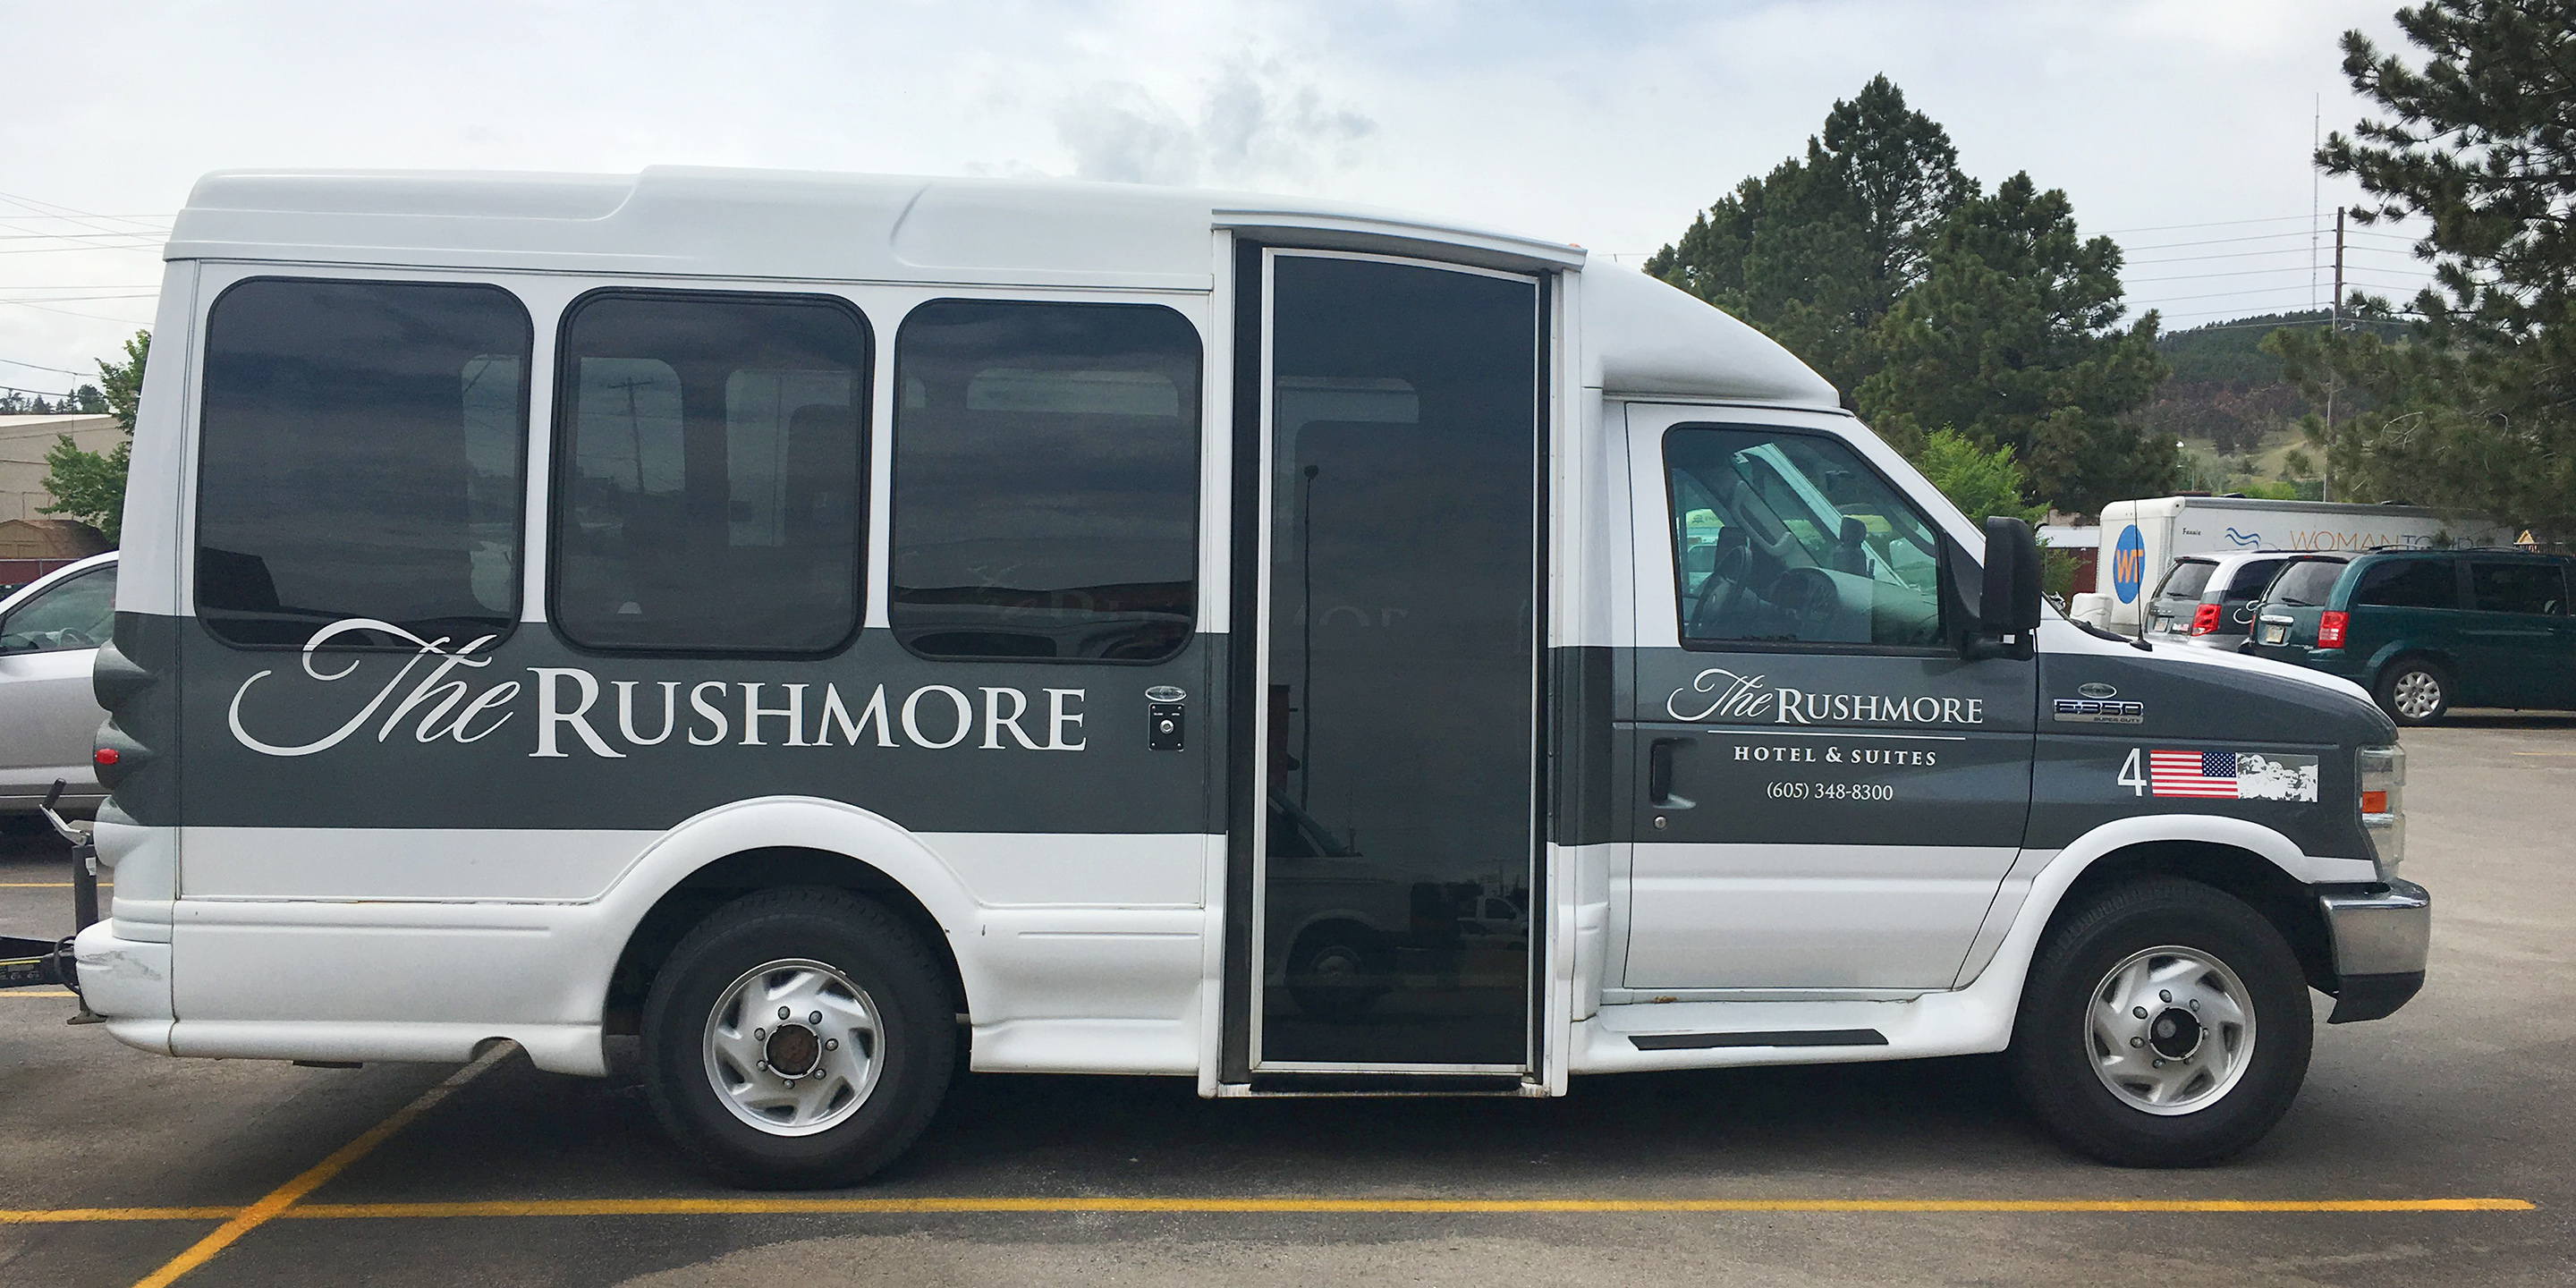 The-Rushmore-Hotel-Airport-Shuttle